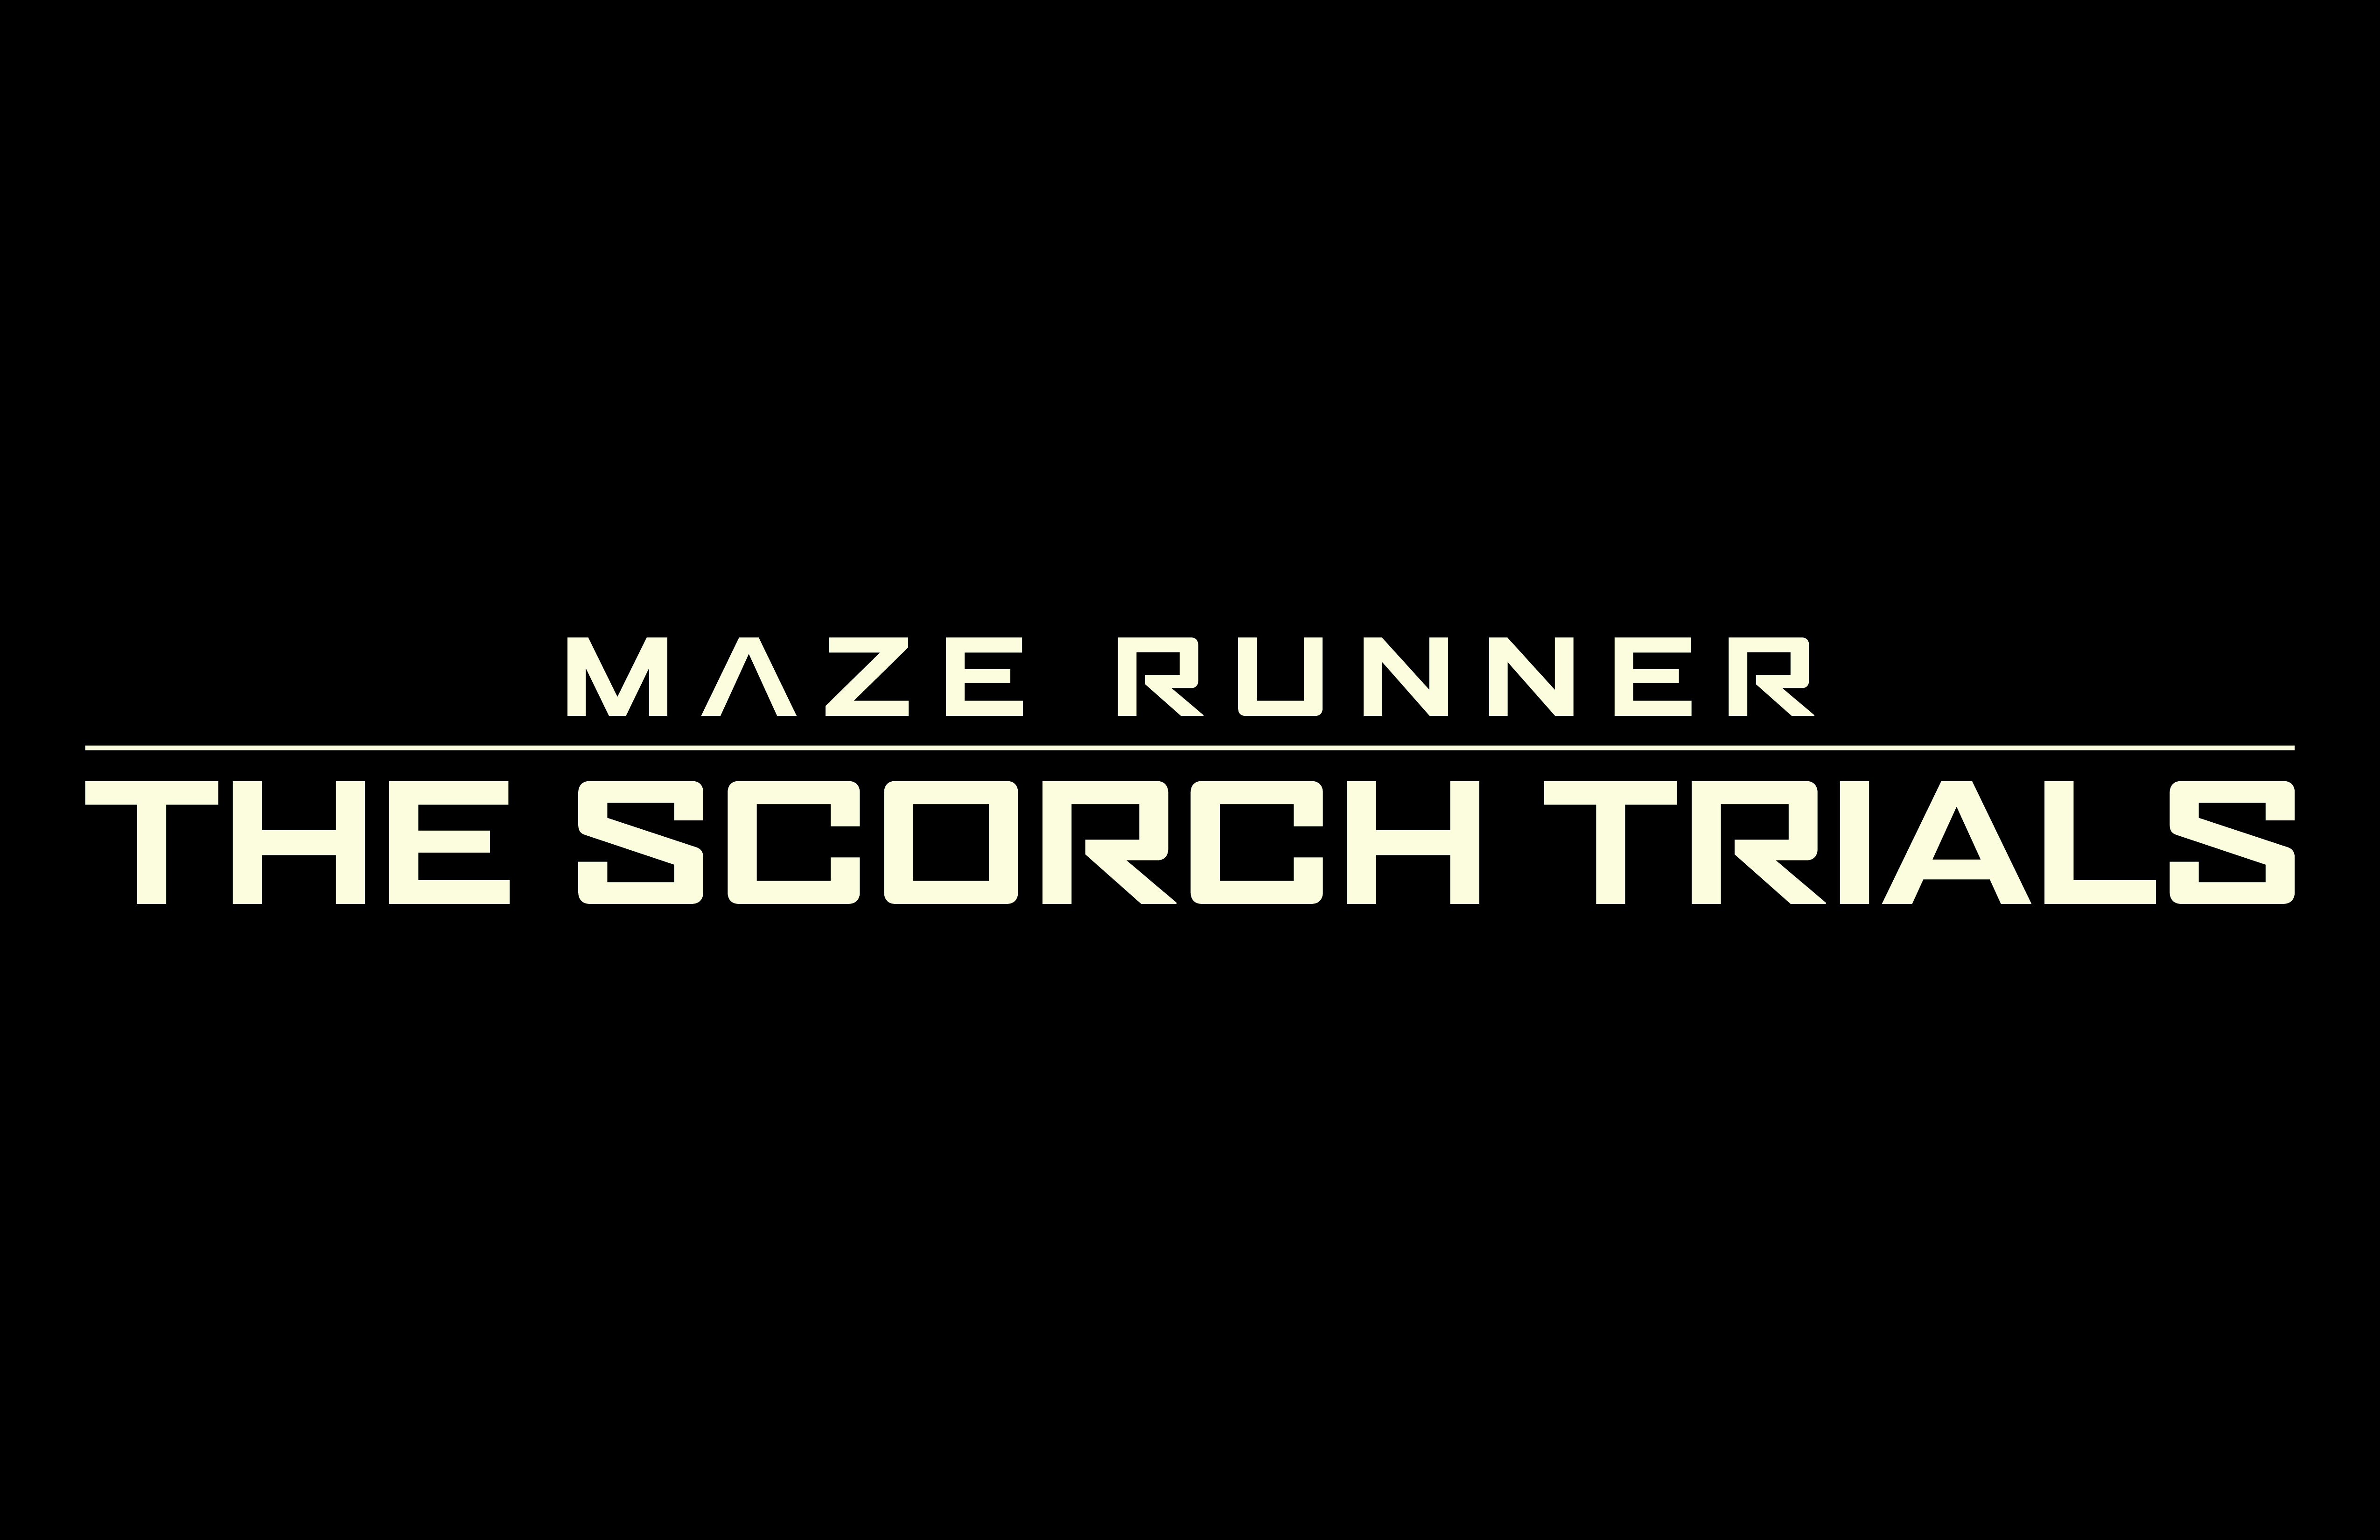 Maze Runner Quotes With Page Numbers: Scorch Trials Quotes With Page Numbers